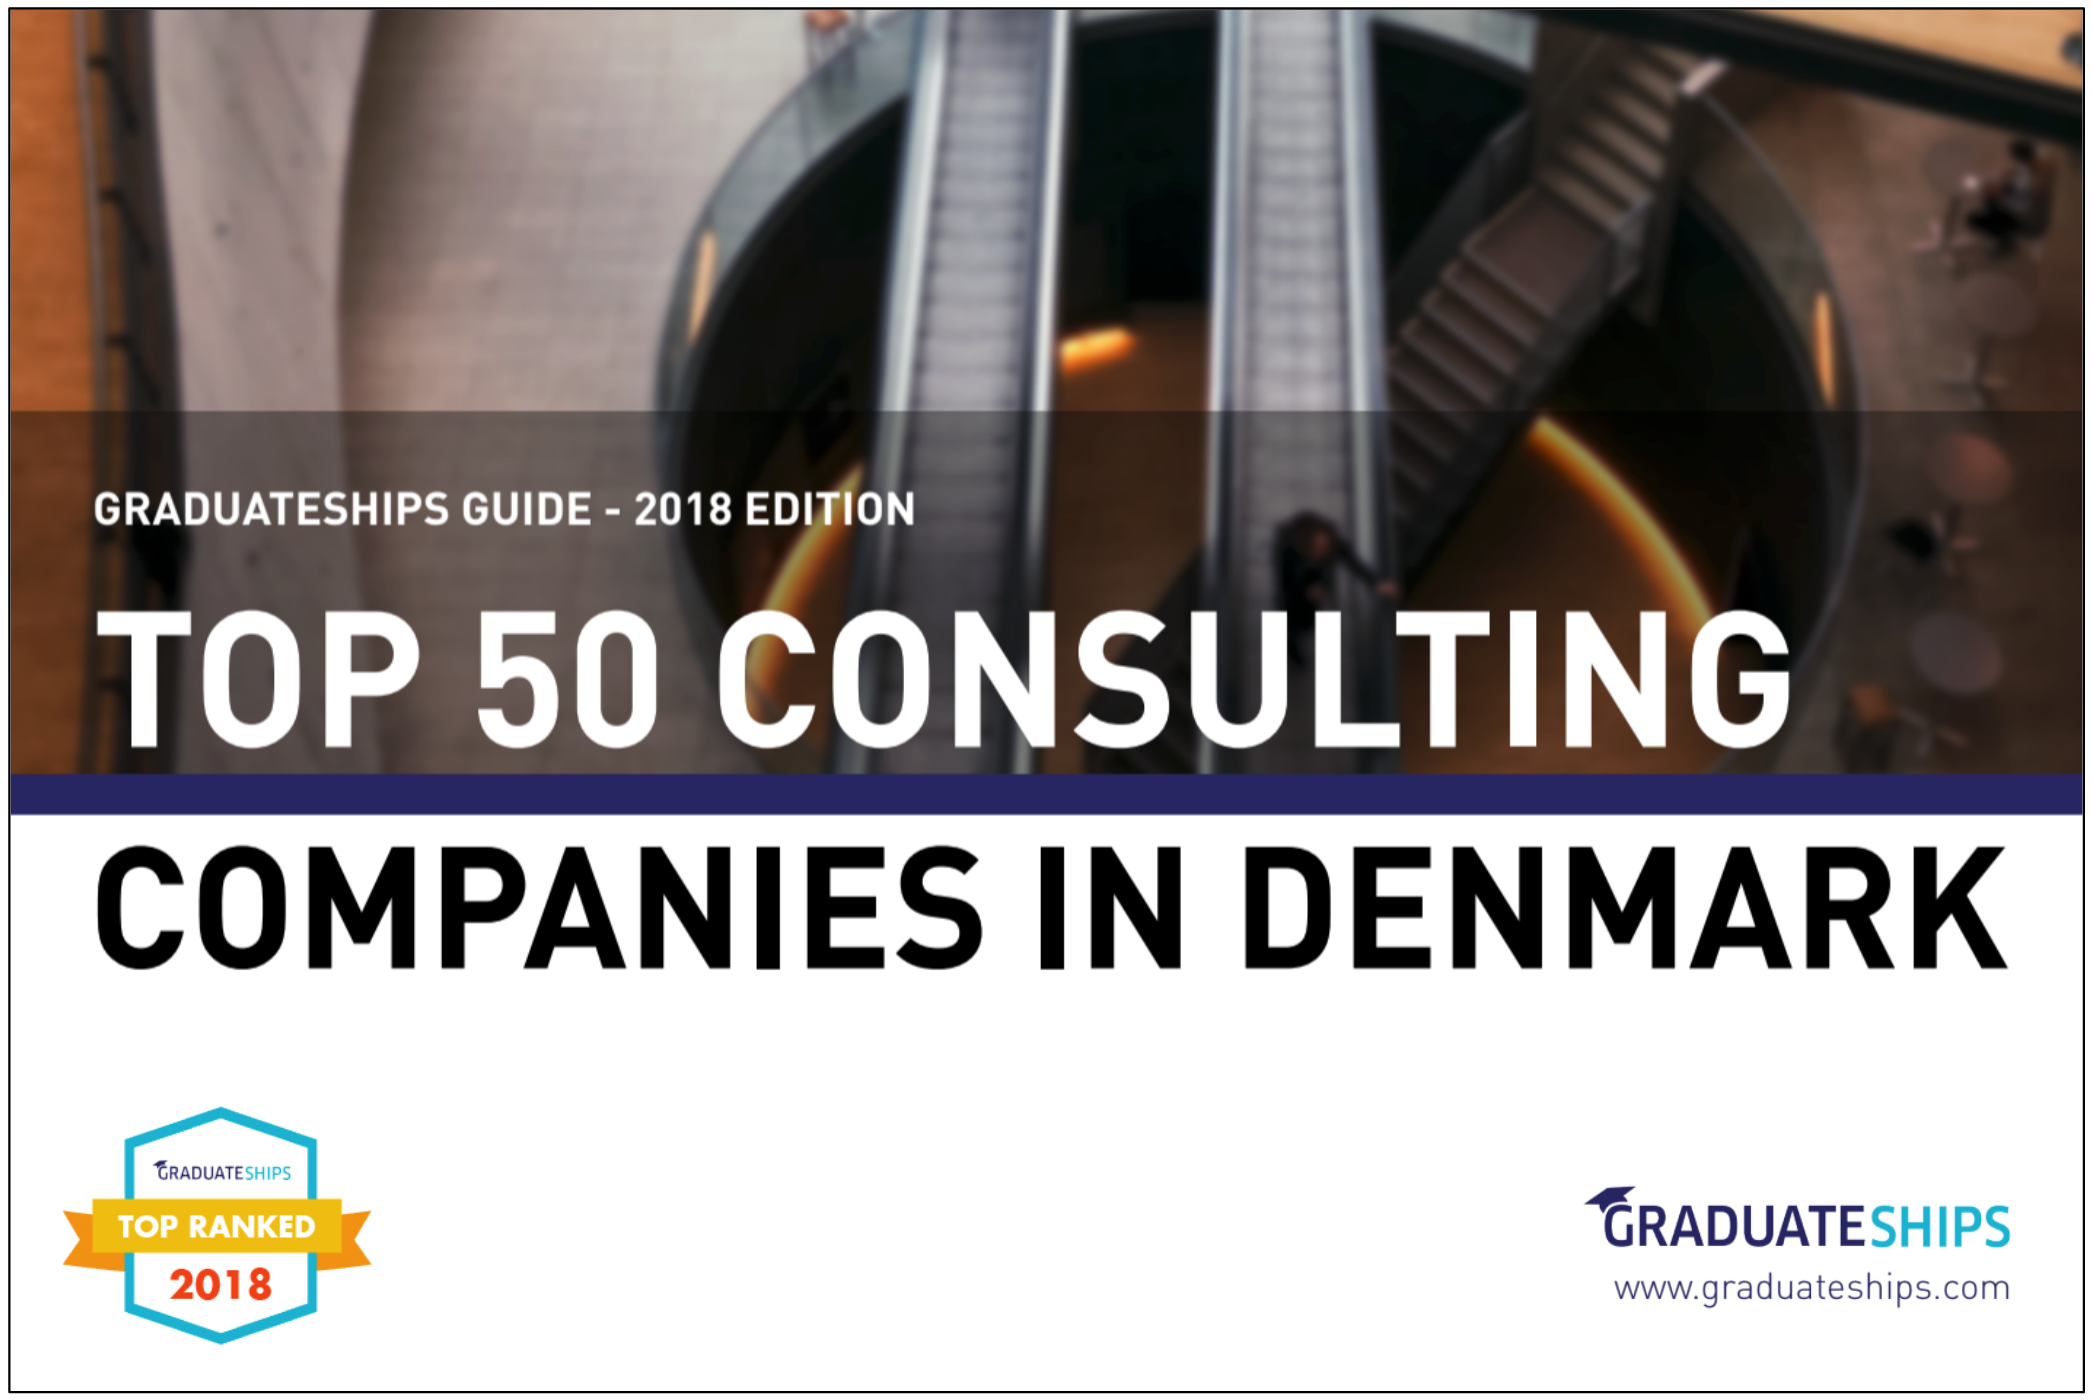 Top 50 Consulting Companies in Denmark